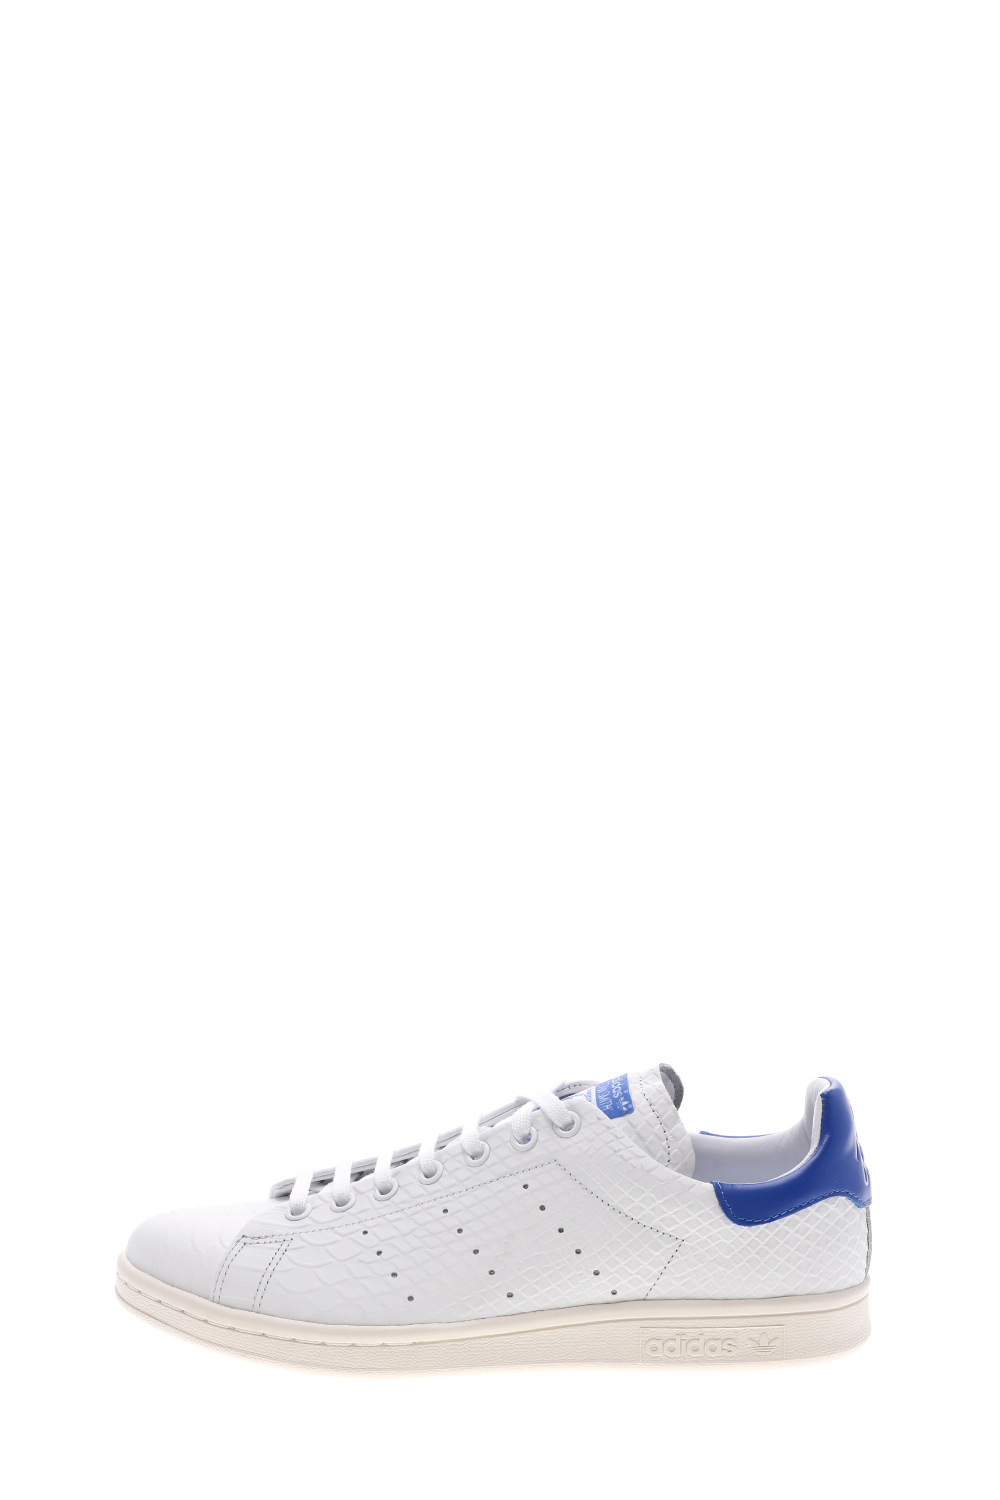 adidas Originals – Ανδρικά sneakers adidas Originals FU9587 STAN SMITH RECON λευκά μπλε